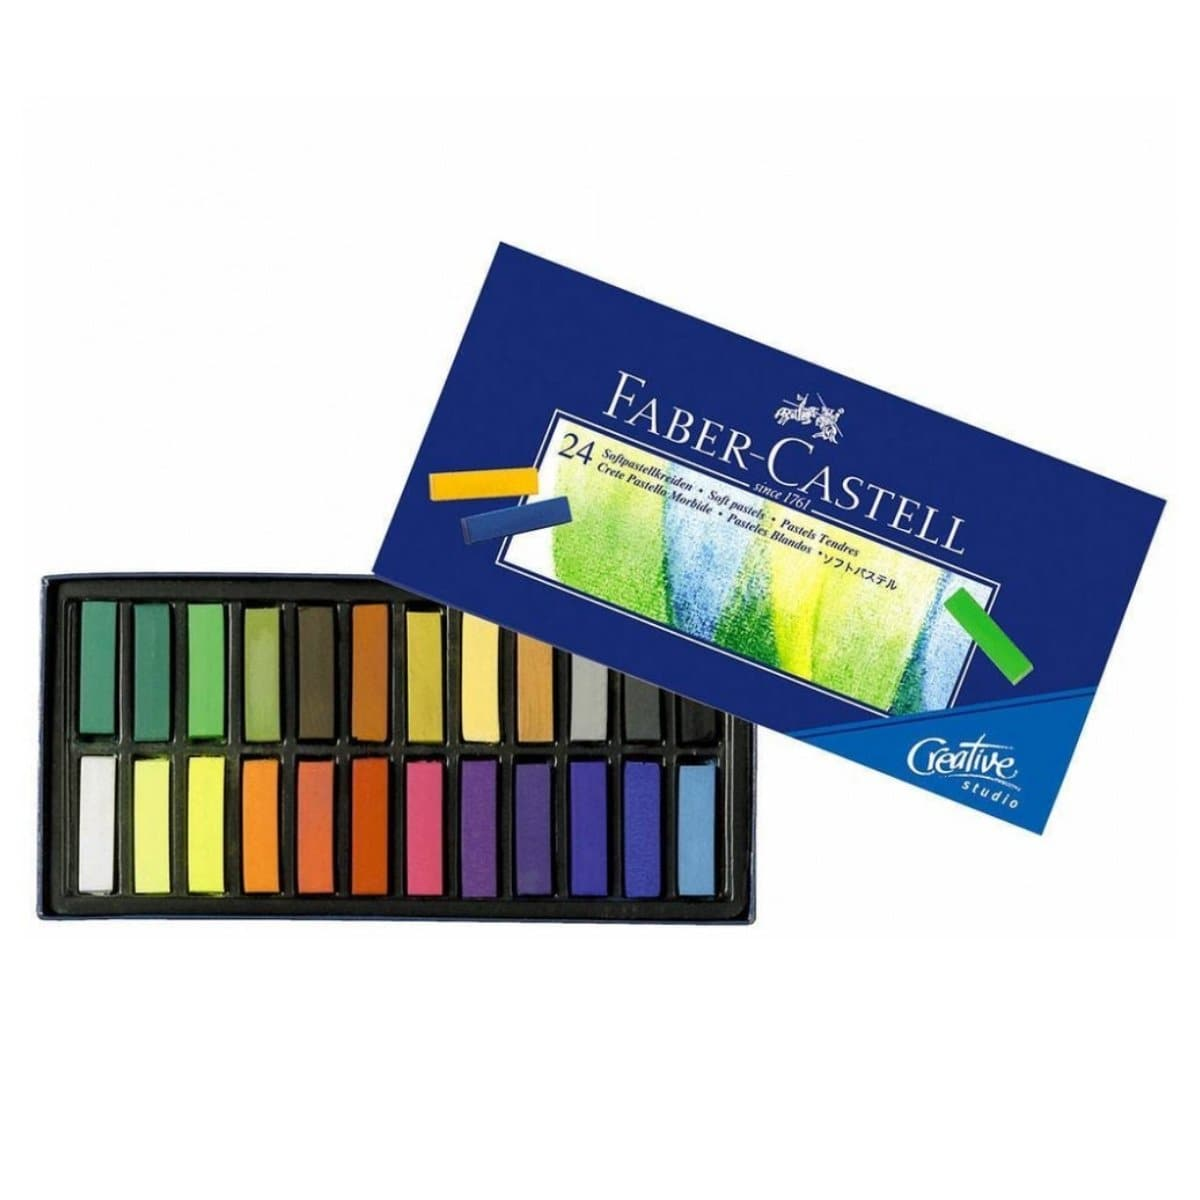 Faber Castell Soft Pastels Crayons, 24/pack